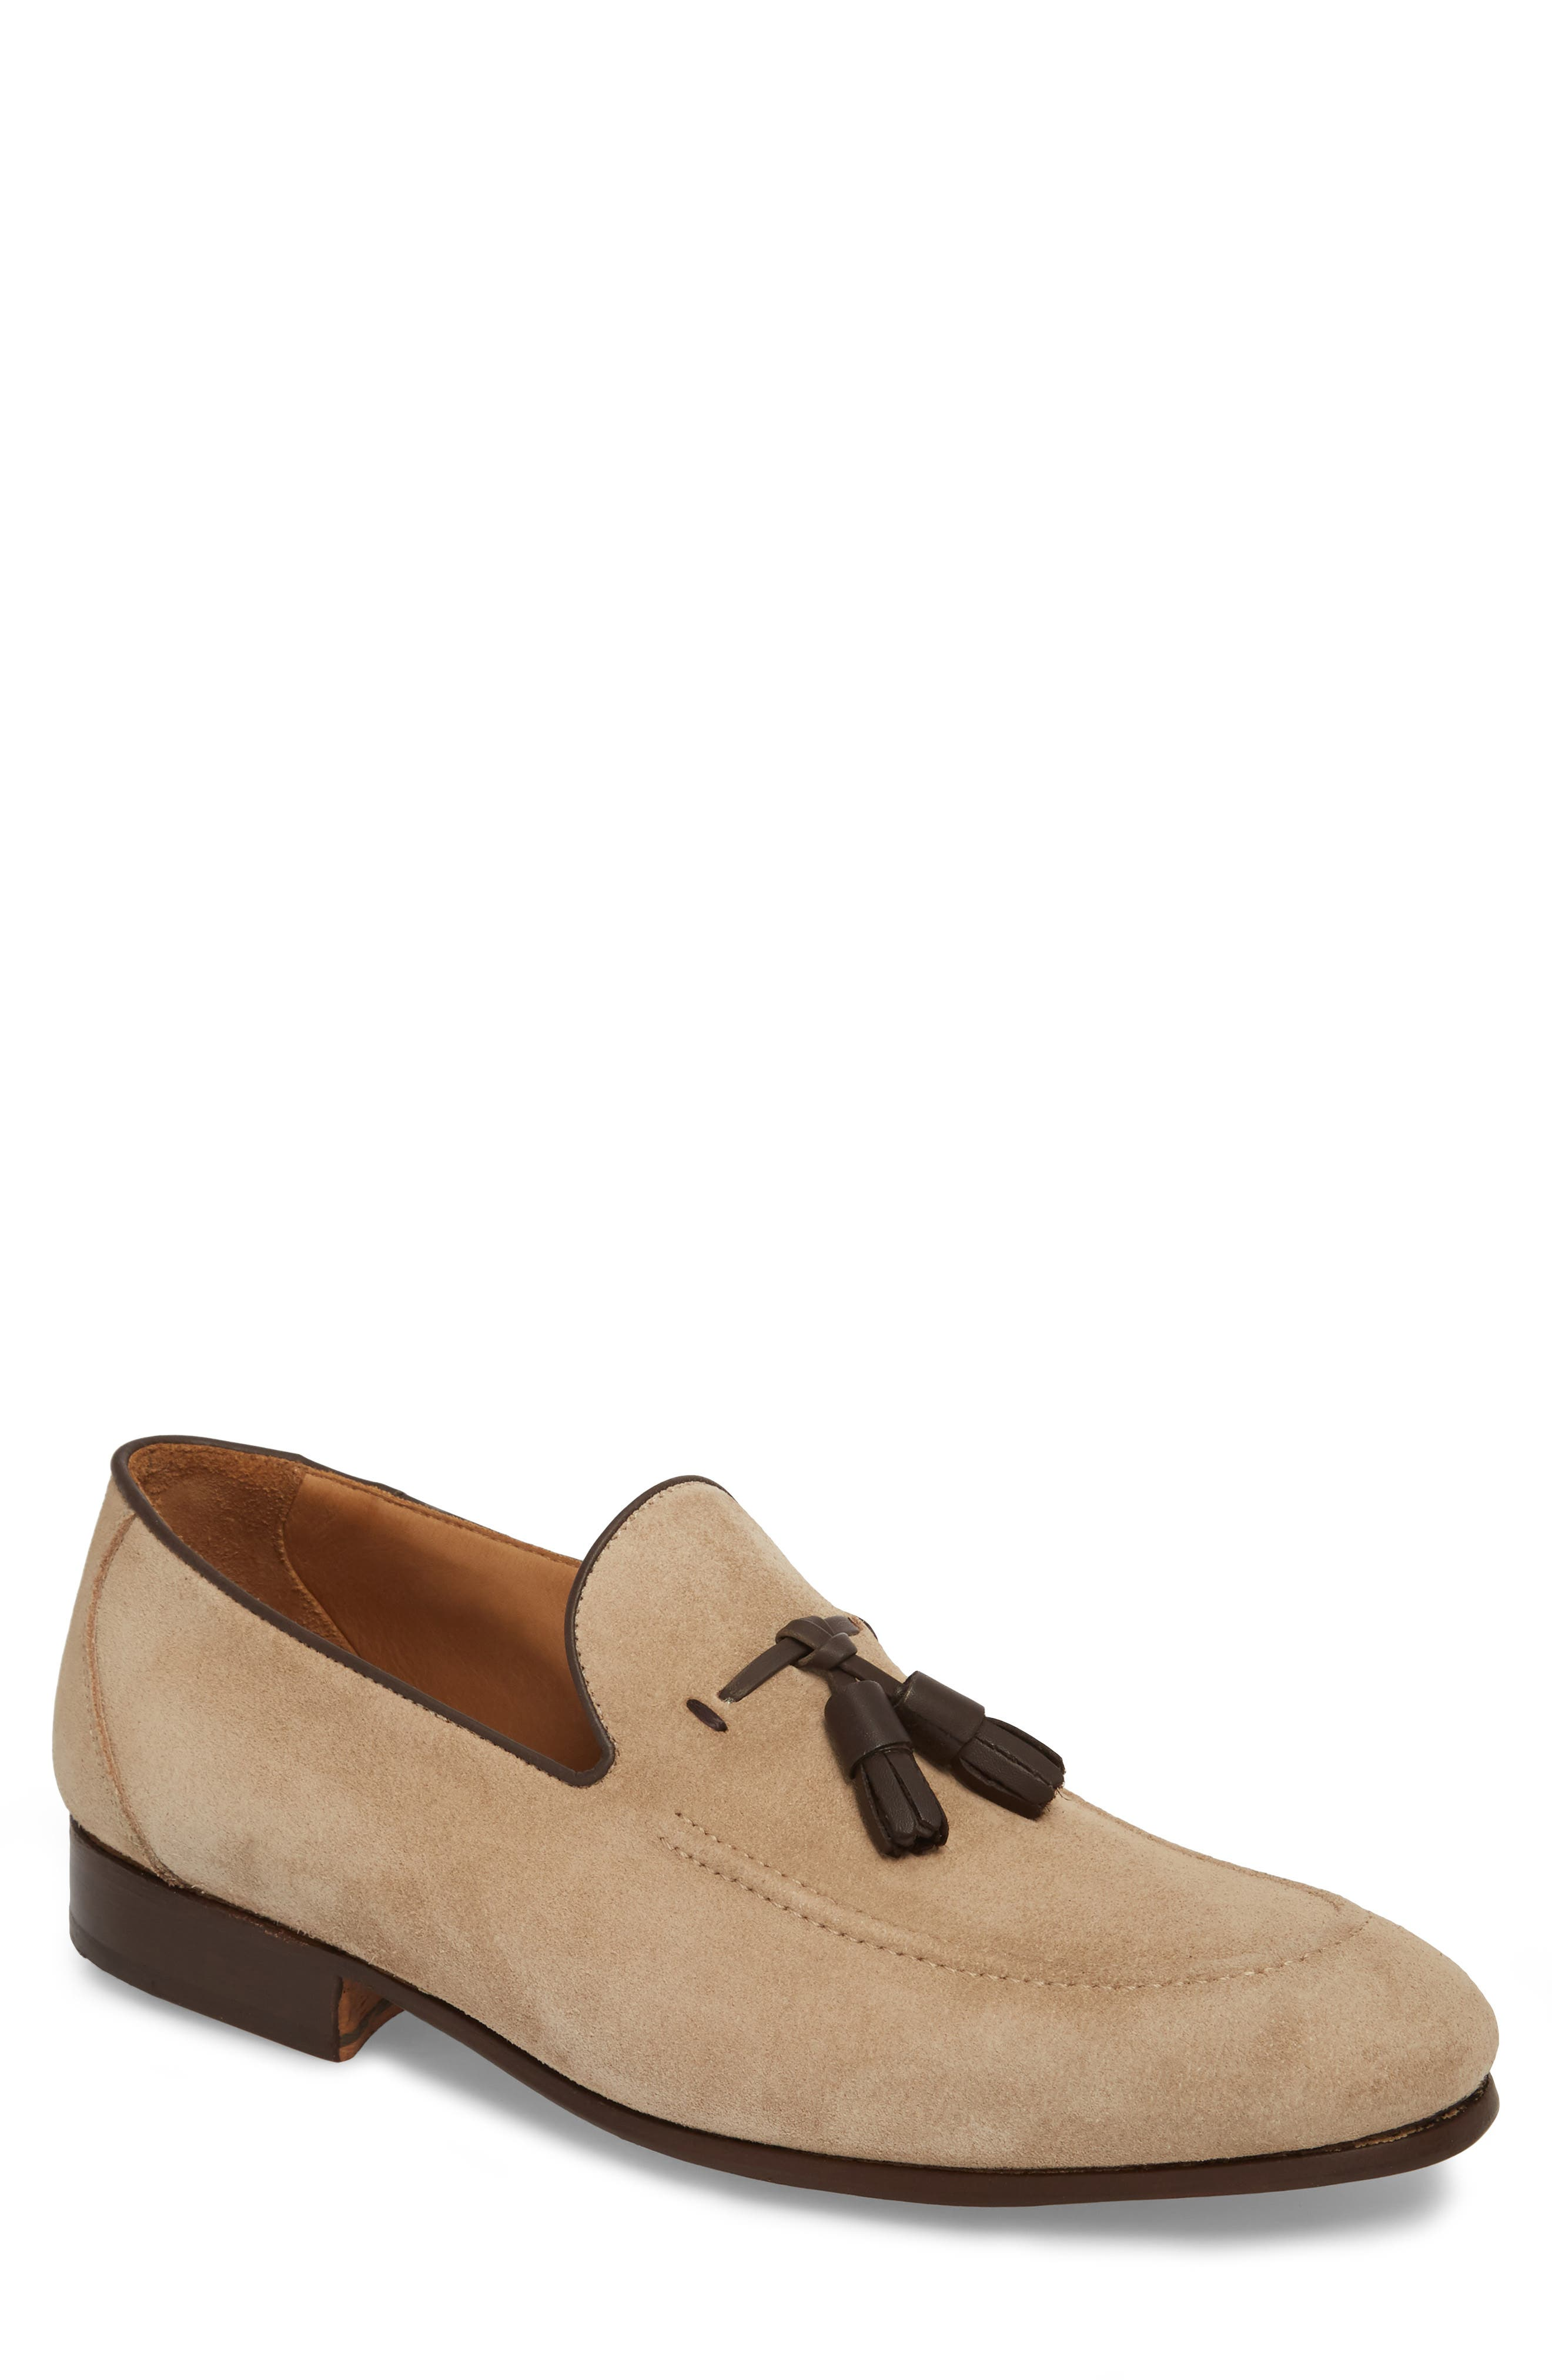 Ario Tassel Loafer,                         Main,                         color, Sand Suede